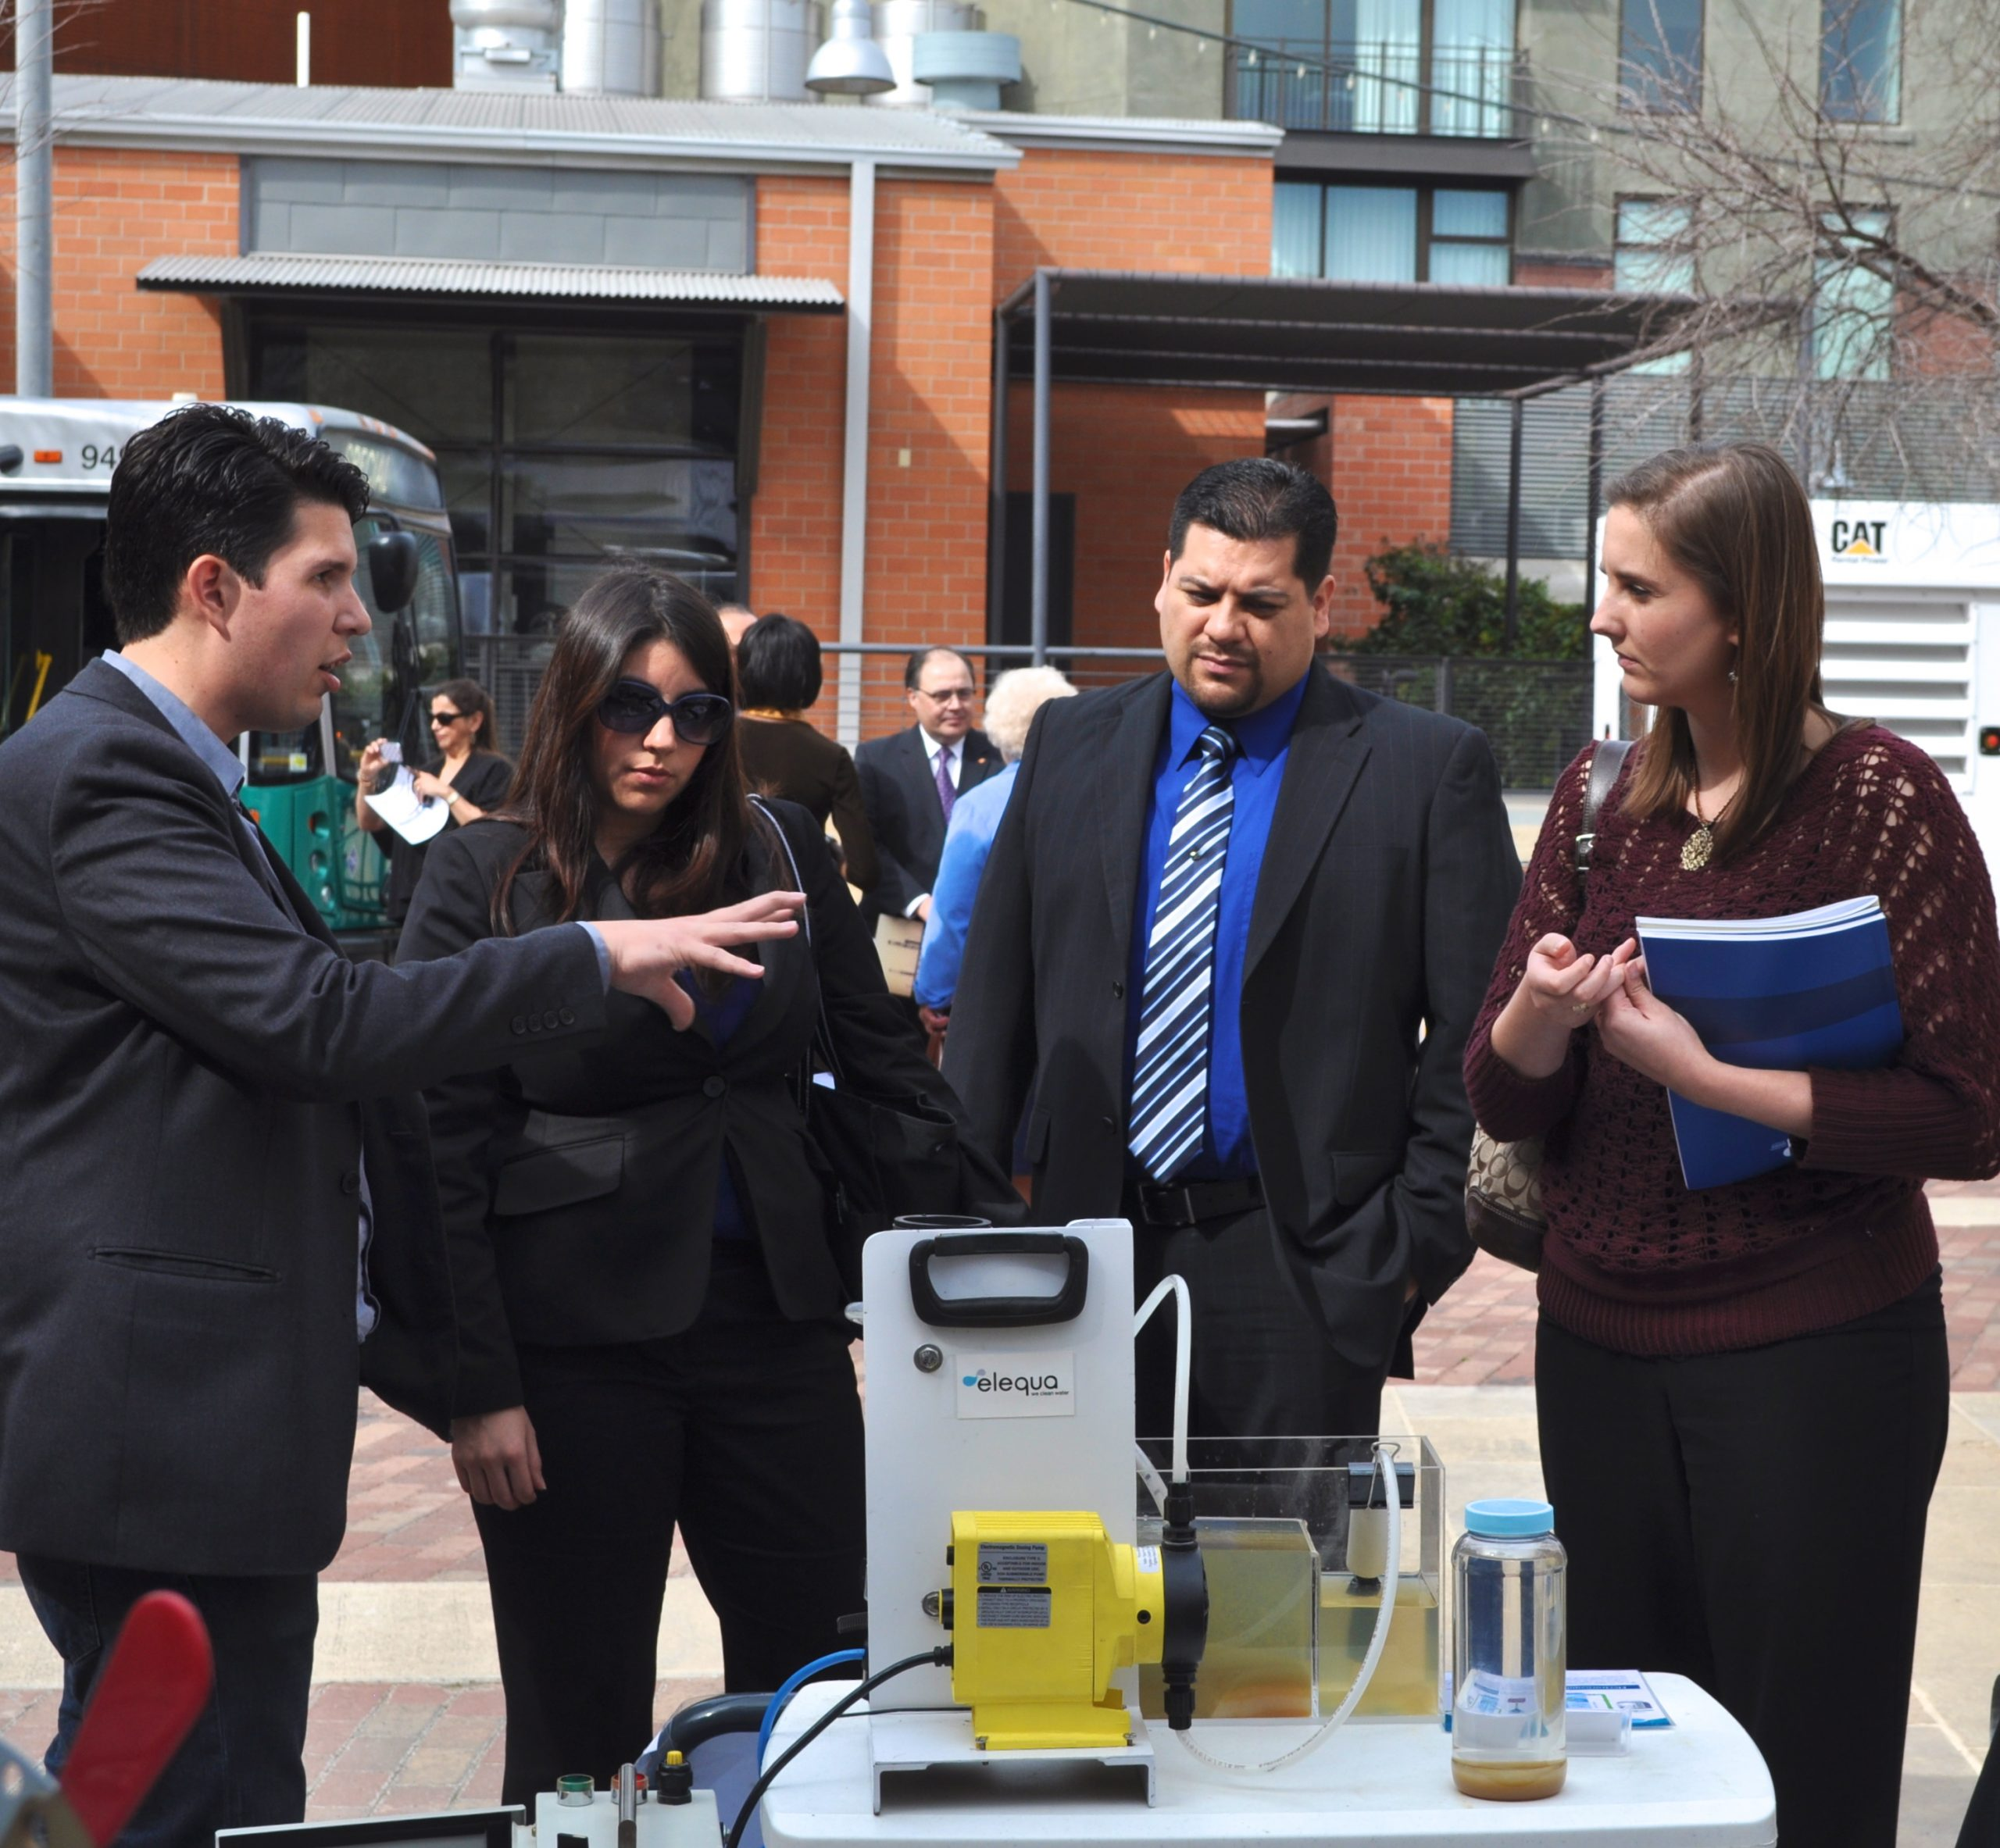 Ryan Beltrán explains how the Elequa technology works during a mobile demonstration. Photo by Iris Dimmick.